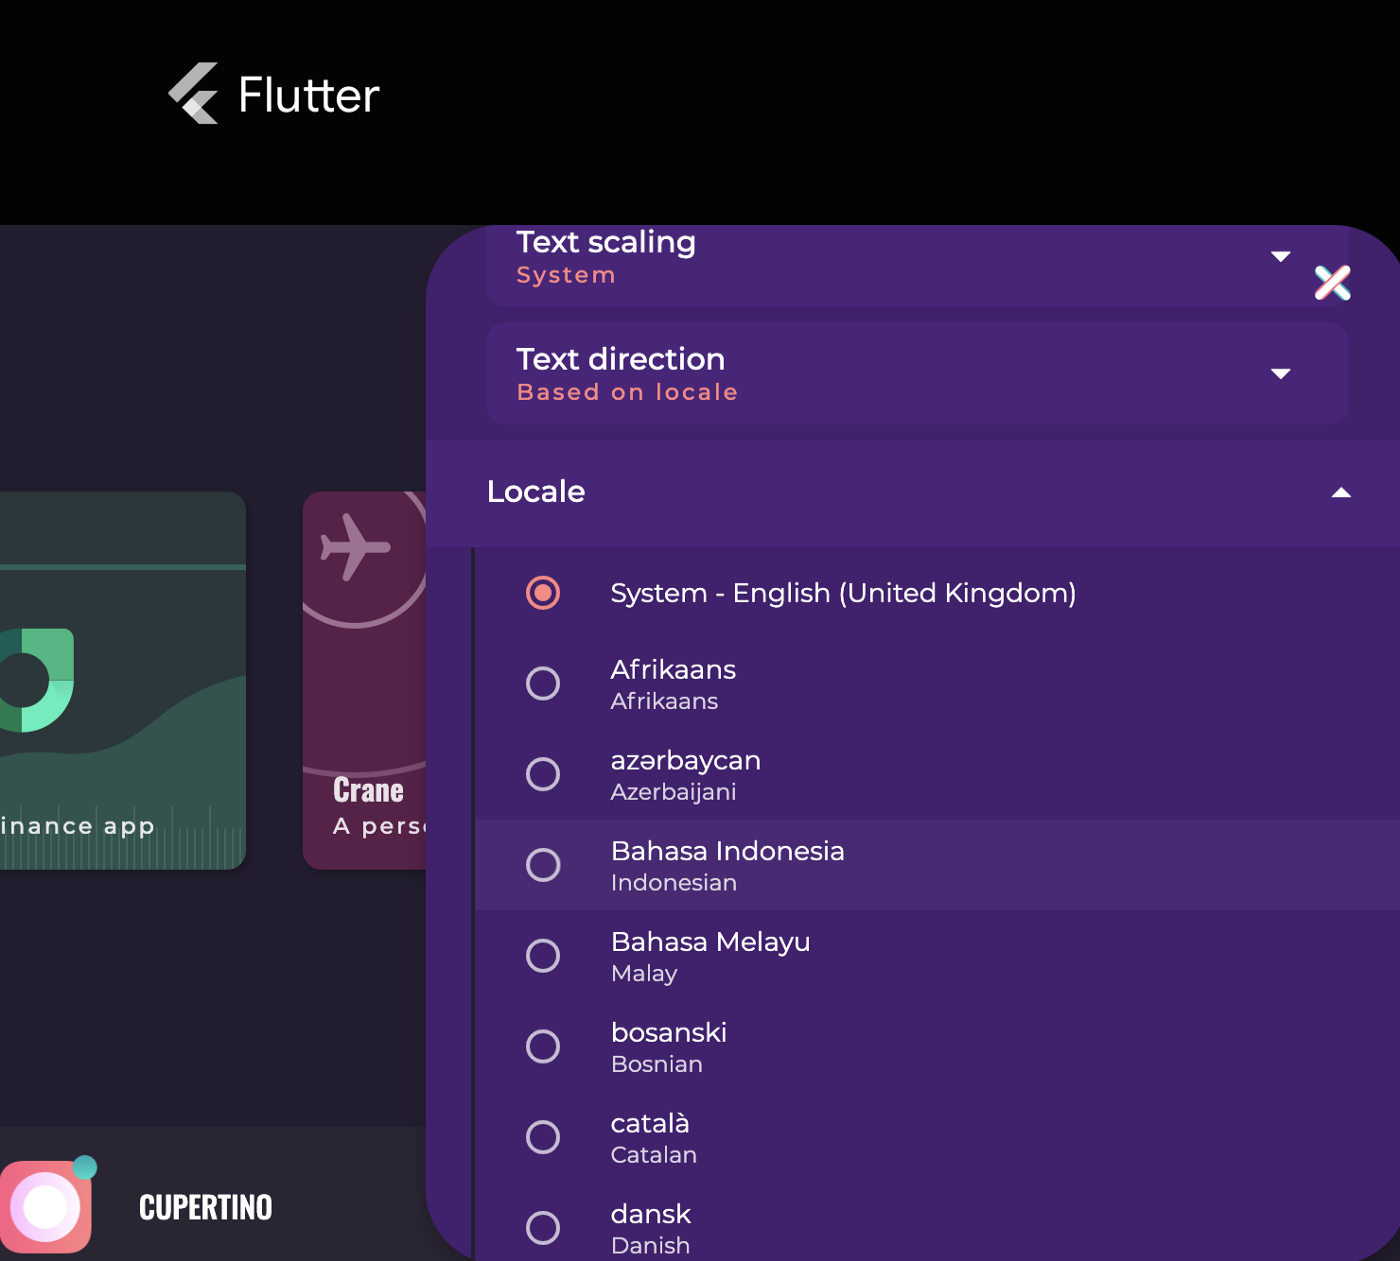 Flutter Gallery settings panel with the locale options expanded